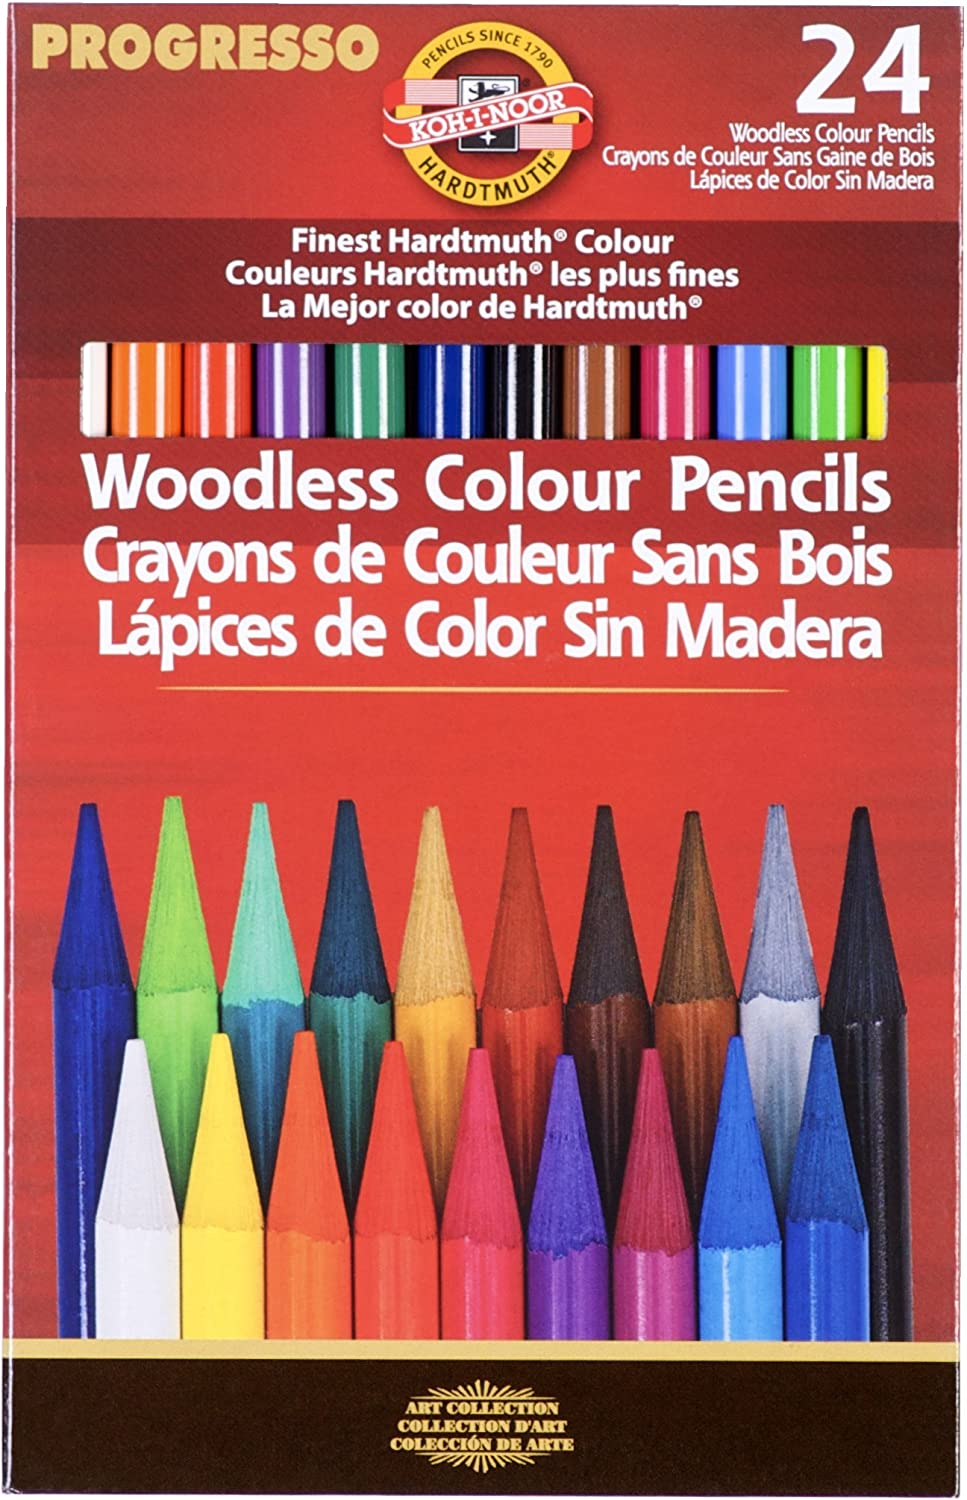 Koh-I-Noor Progresso Woodless Colored 24-Pencil Set, Assorted Colored Pencils (FA8758.24) : Artists Pencils : Office Products